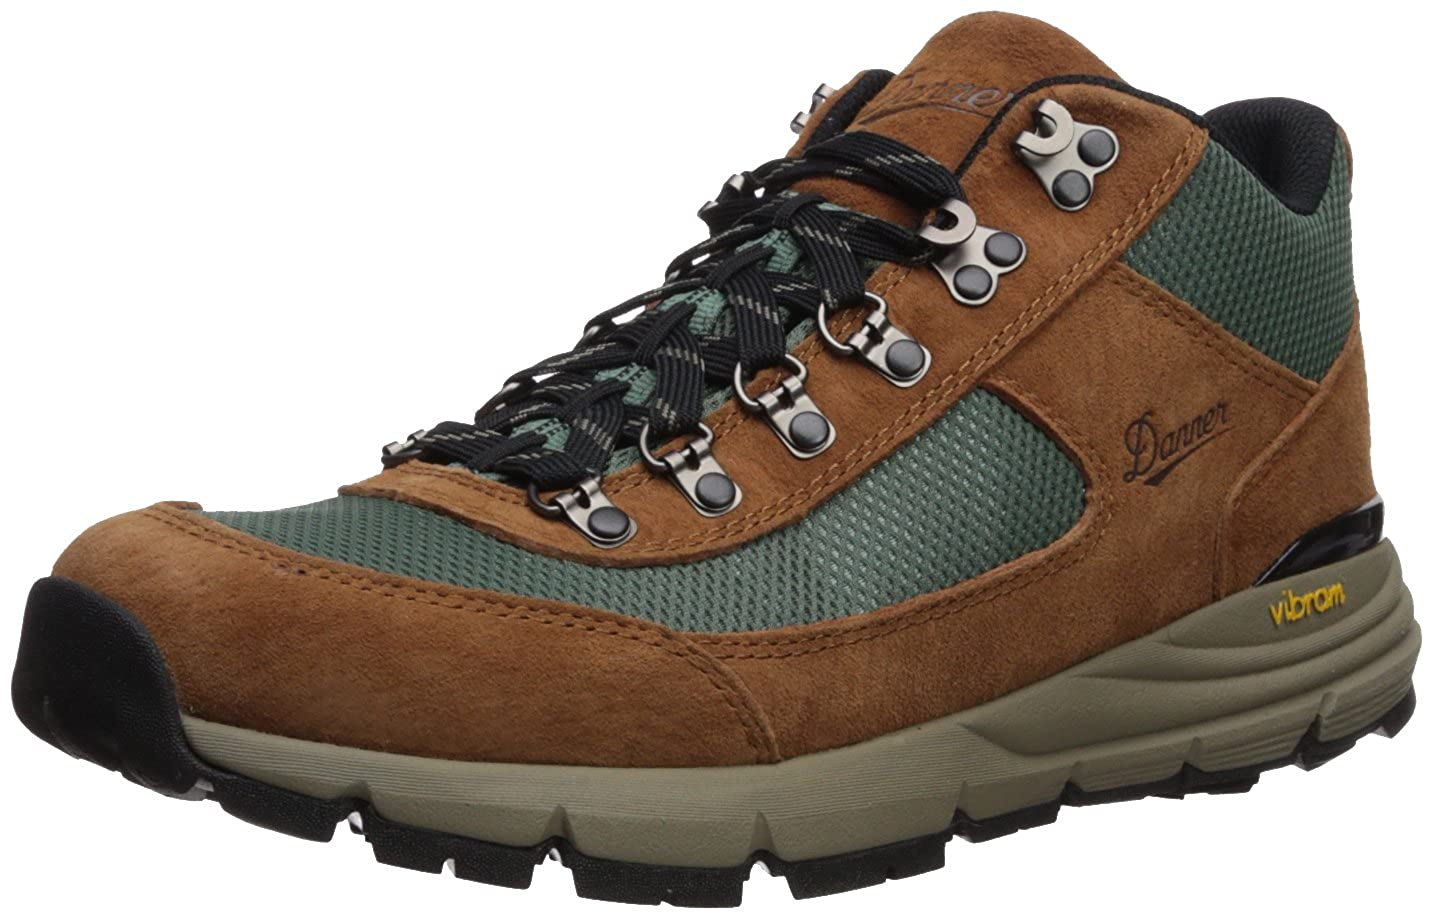 Brown Teal Danner Mens South Rim 600 4.5  Hiking Boot